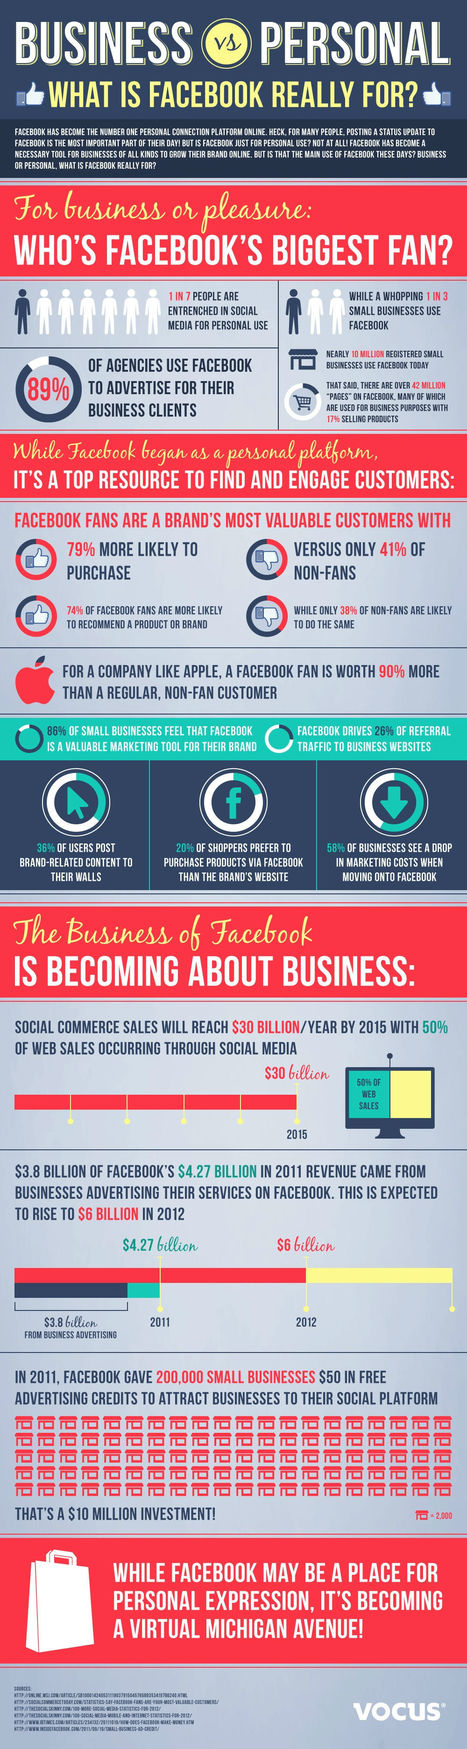 Why Sales on Social Media Will Be Huge By 2015 [INFOGRAPHIC] | Cultura de massa no Século XXI (Mass Culture in the XXI Century) | Scoop.it